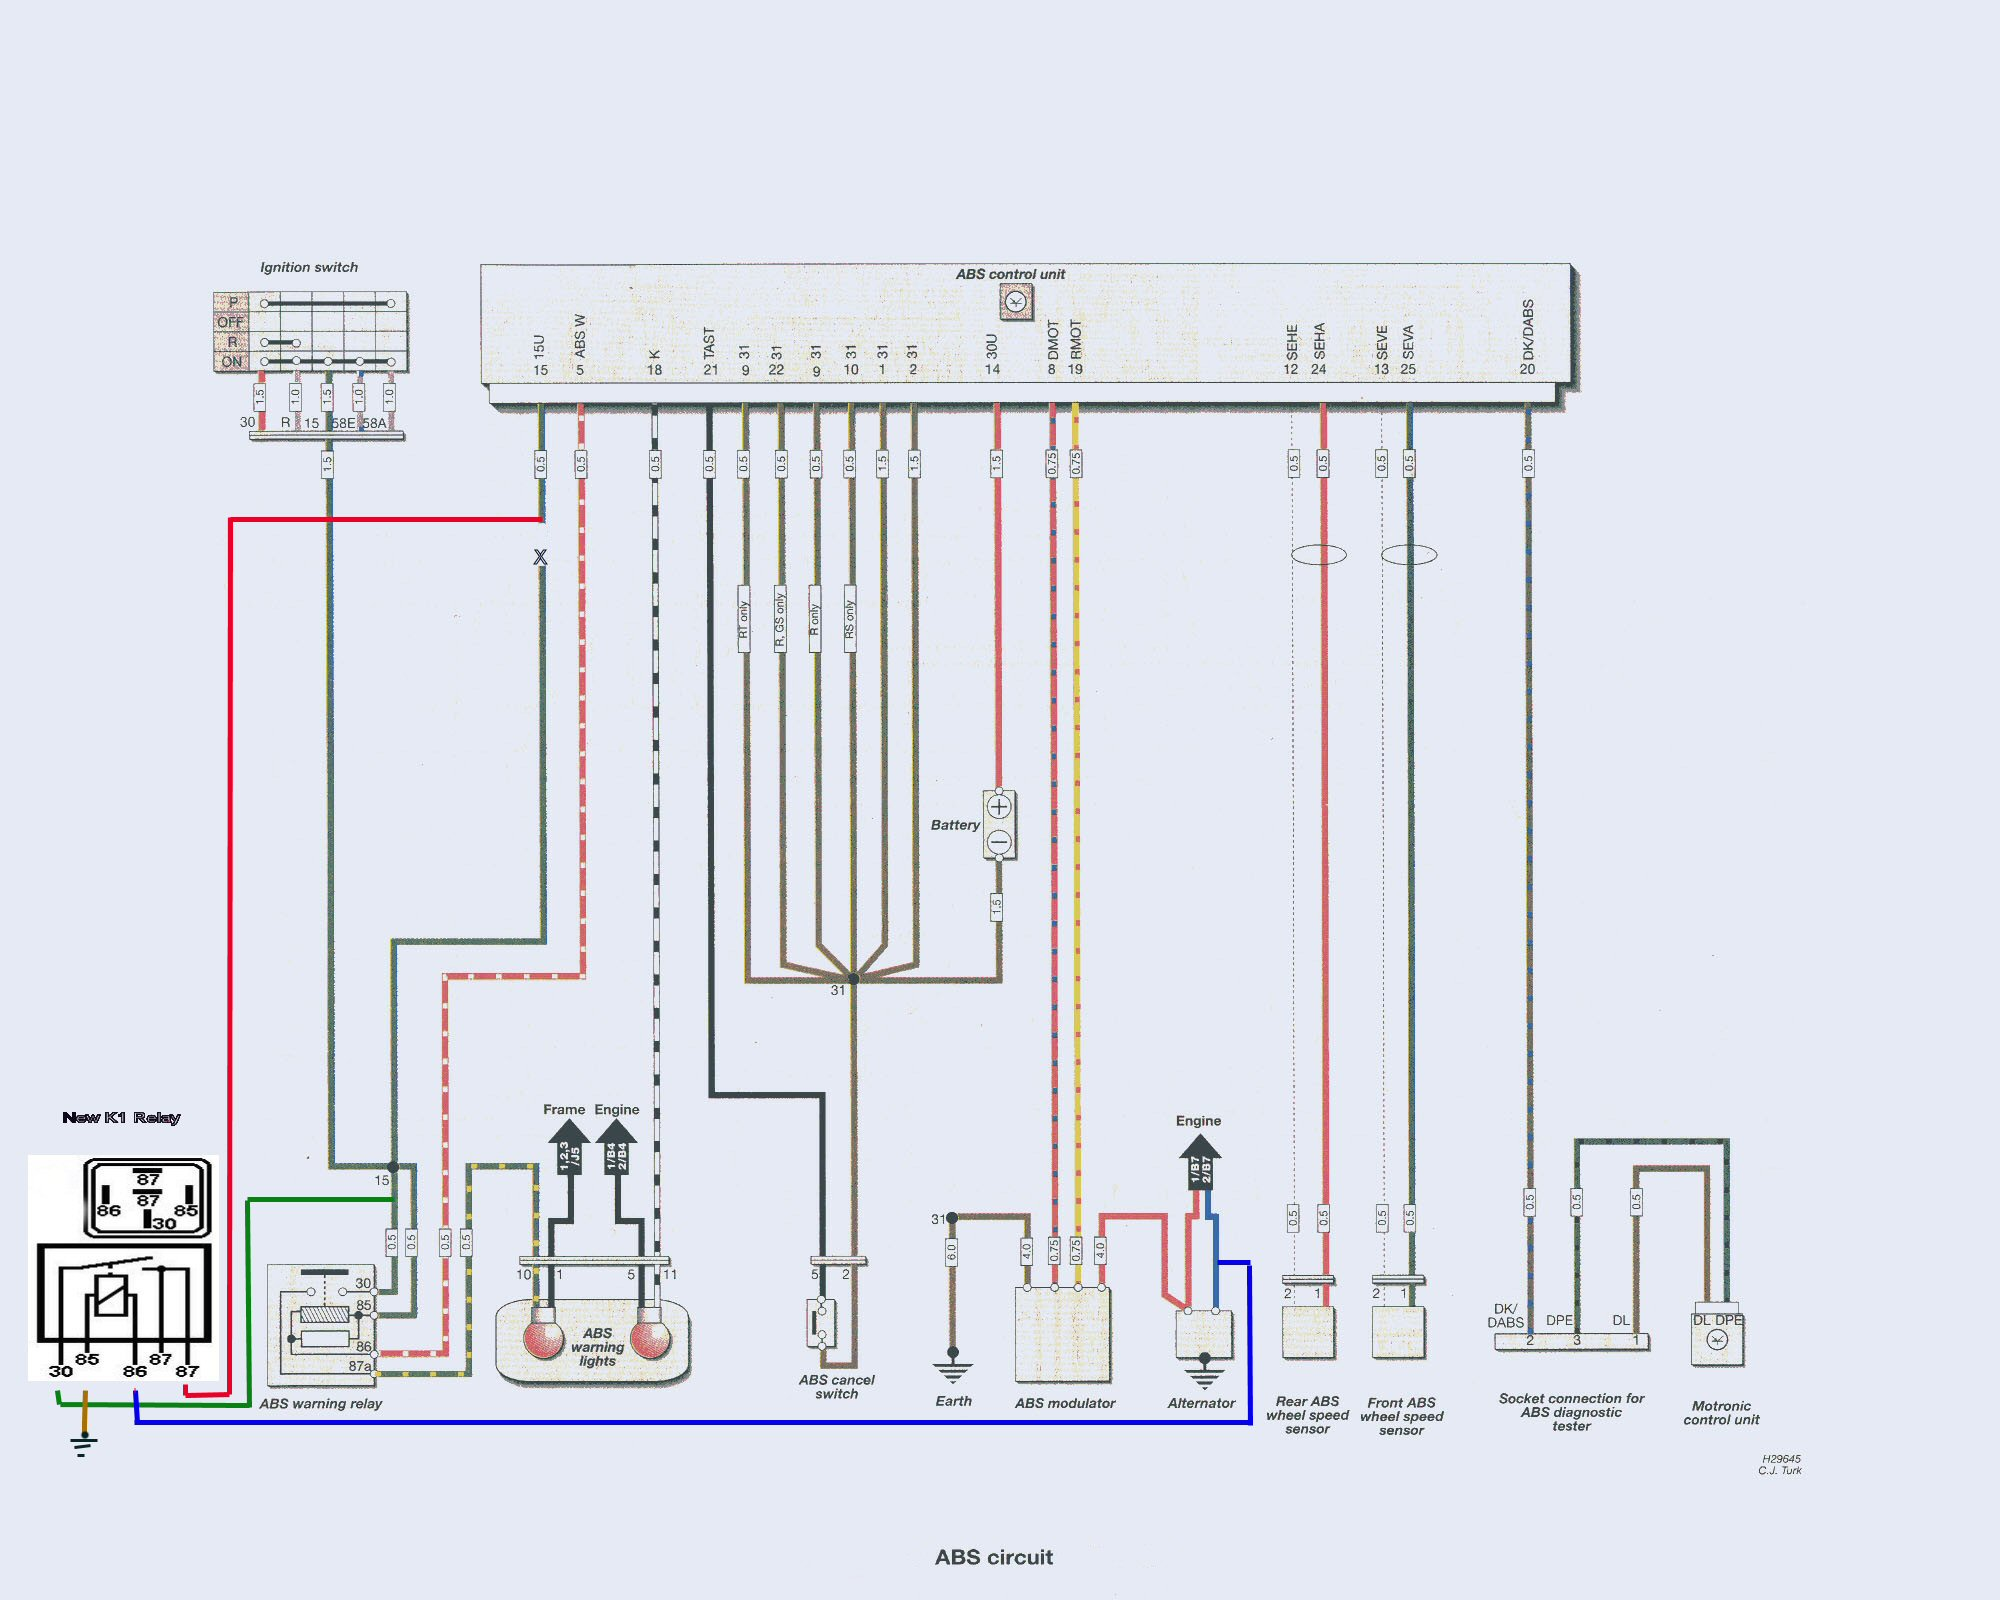 hight resolution of  r1100rt wiring diagram index listing of wiring diagrams on 1997 bmw wiring diagram